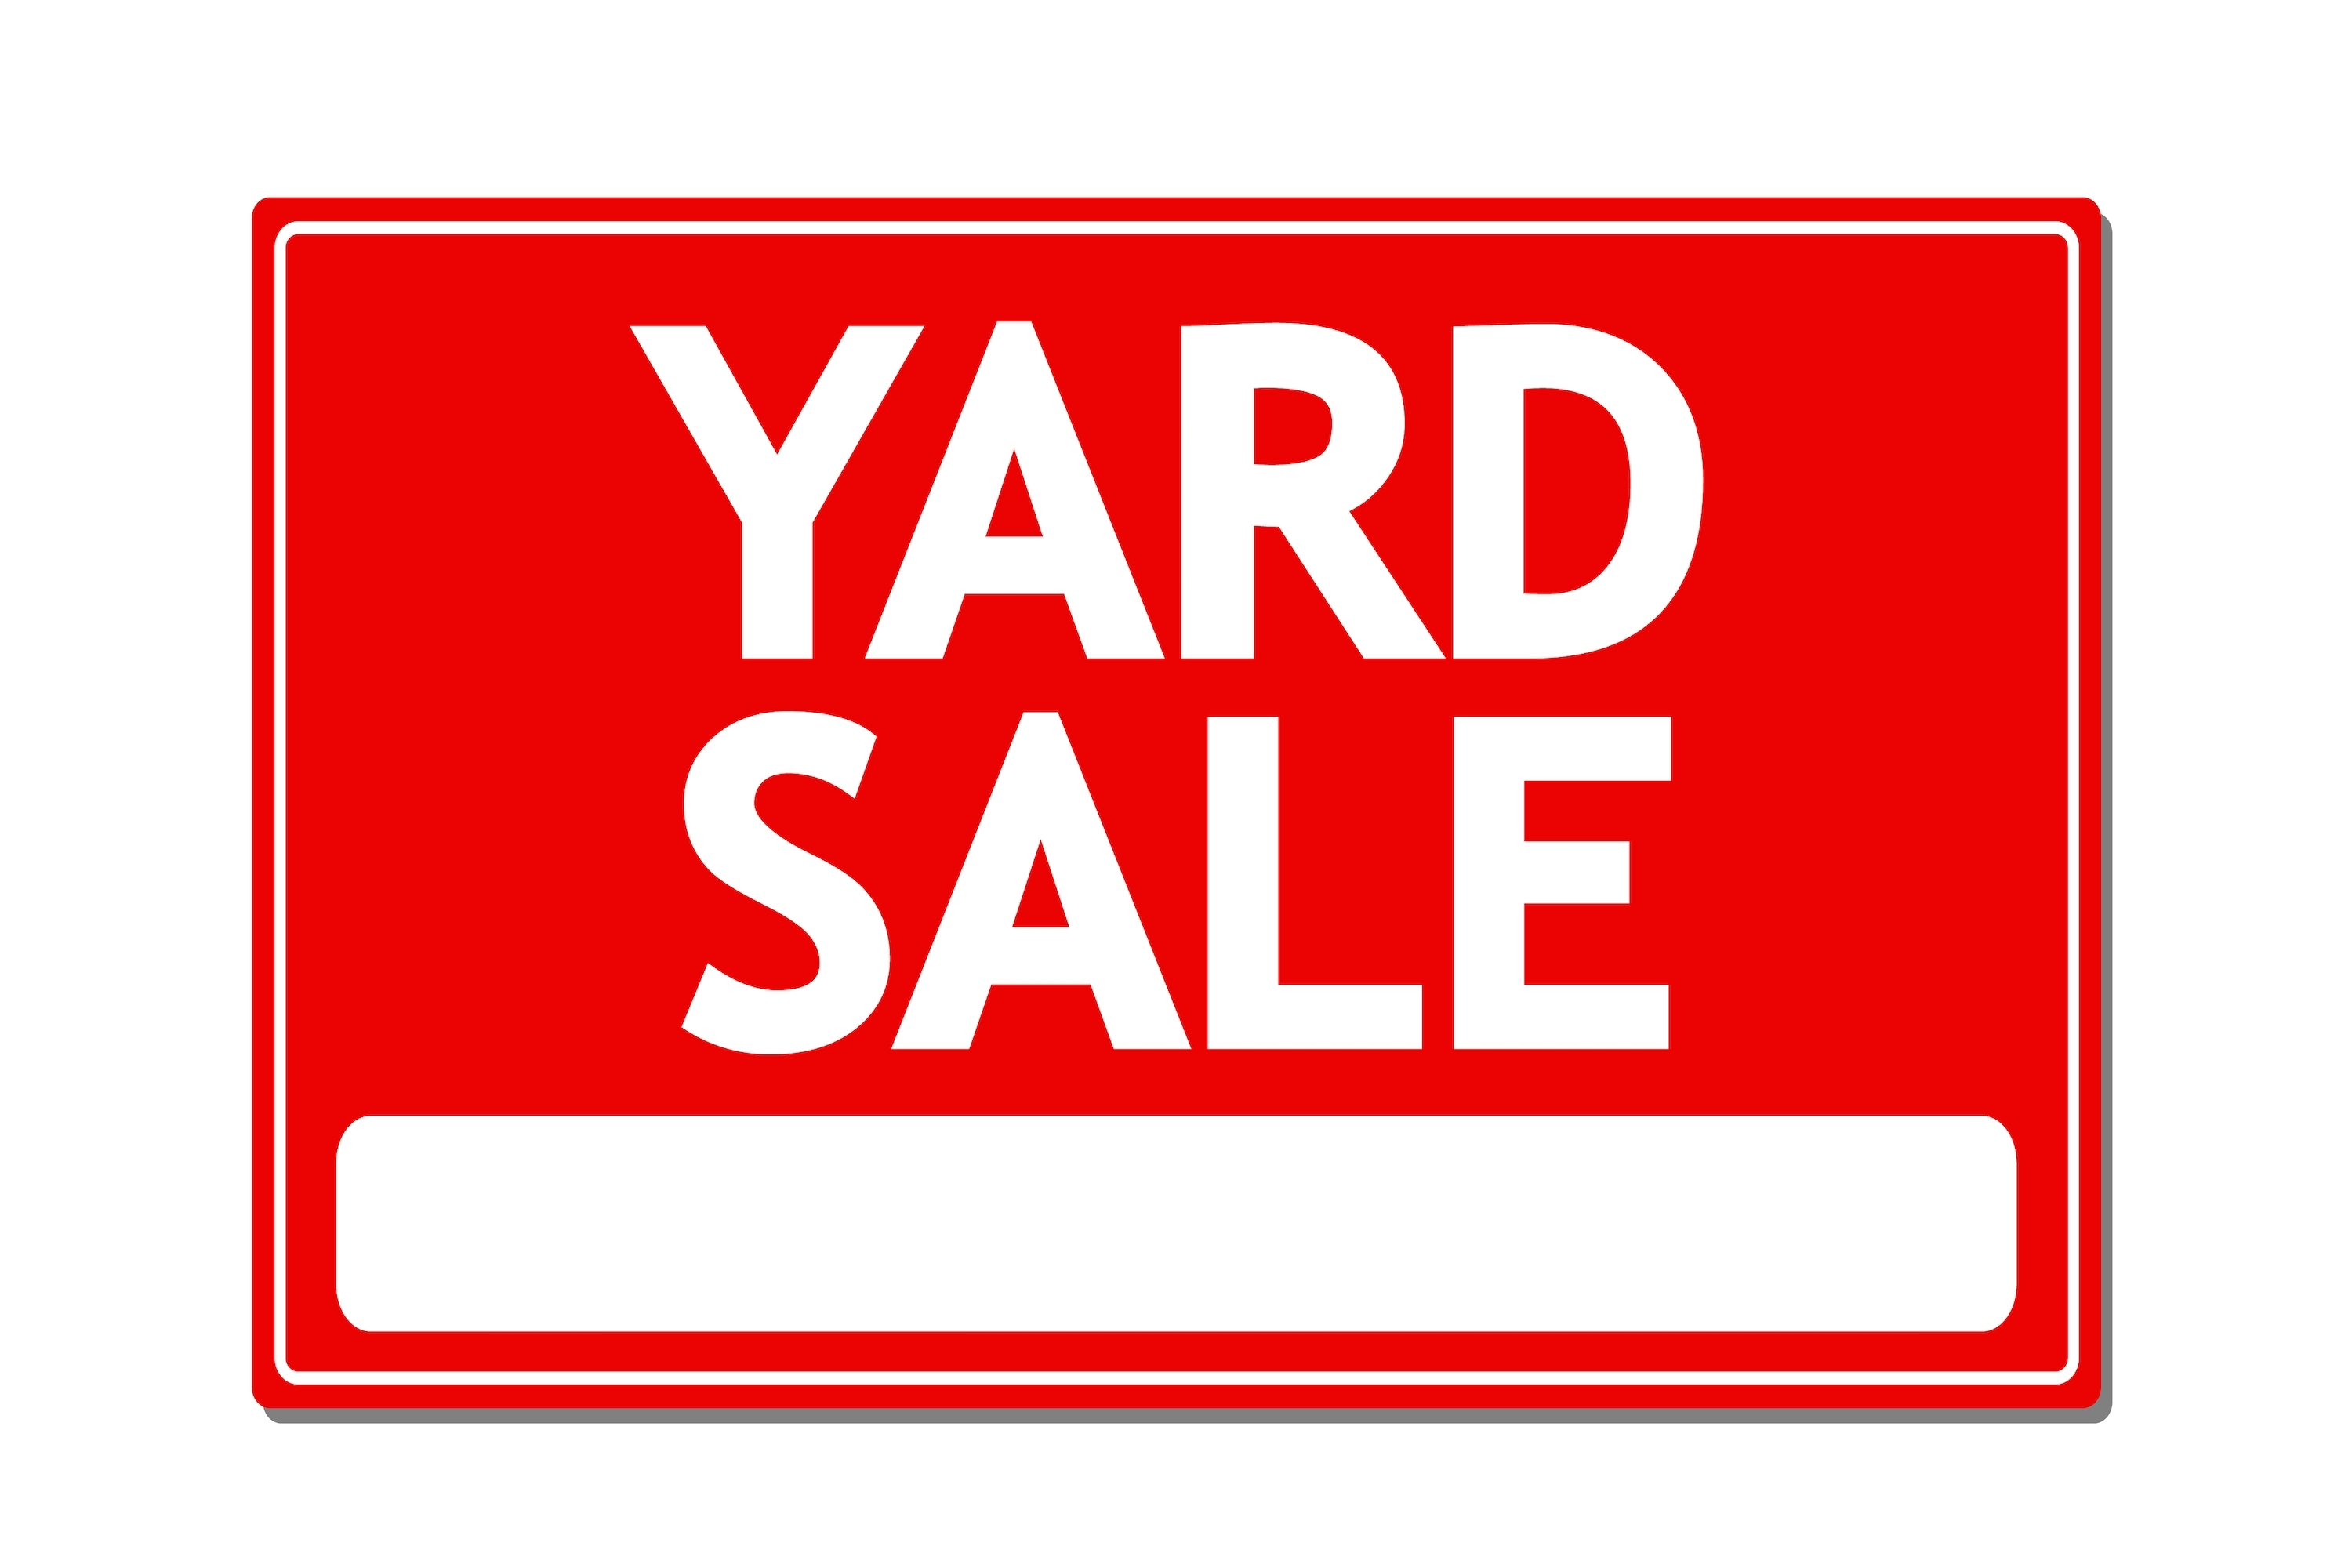 north plainfield to hold 2nd annual borough wide yard sale yard sale clip art images yard sale clip art images